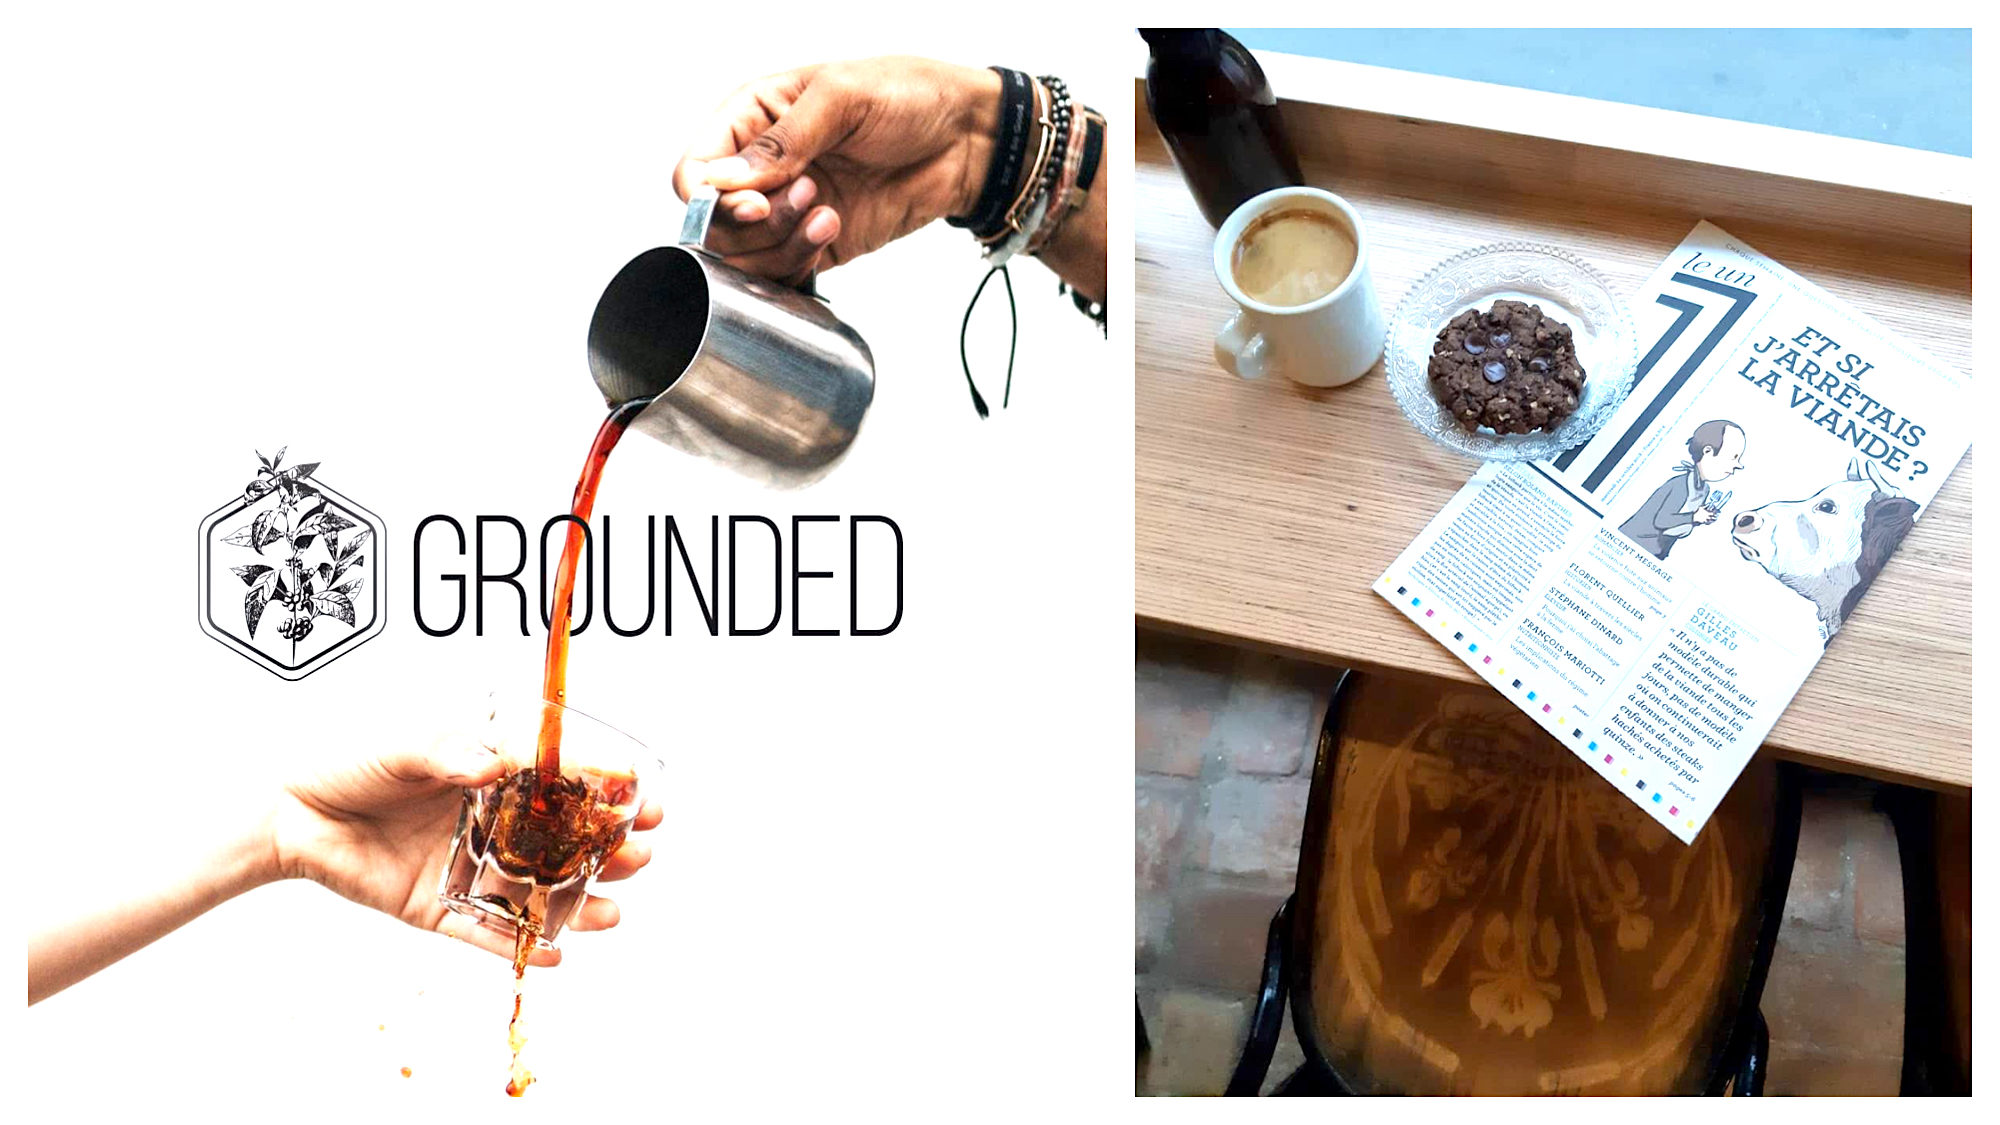 A poster for 'Grounded' coffee shop in Paris with someone serving coffee and spilling it (left). A wooden bench-table with a cup of coffee, a cookie and an issue of 'Un', a French magazine at vegan coffee shop Grounded (right).